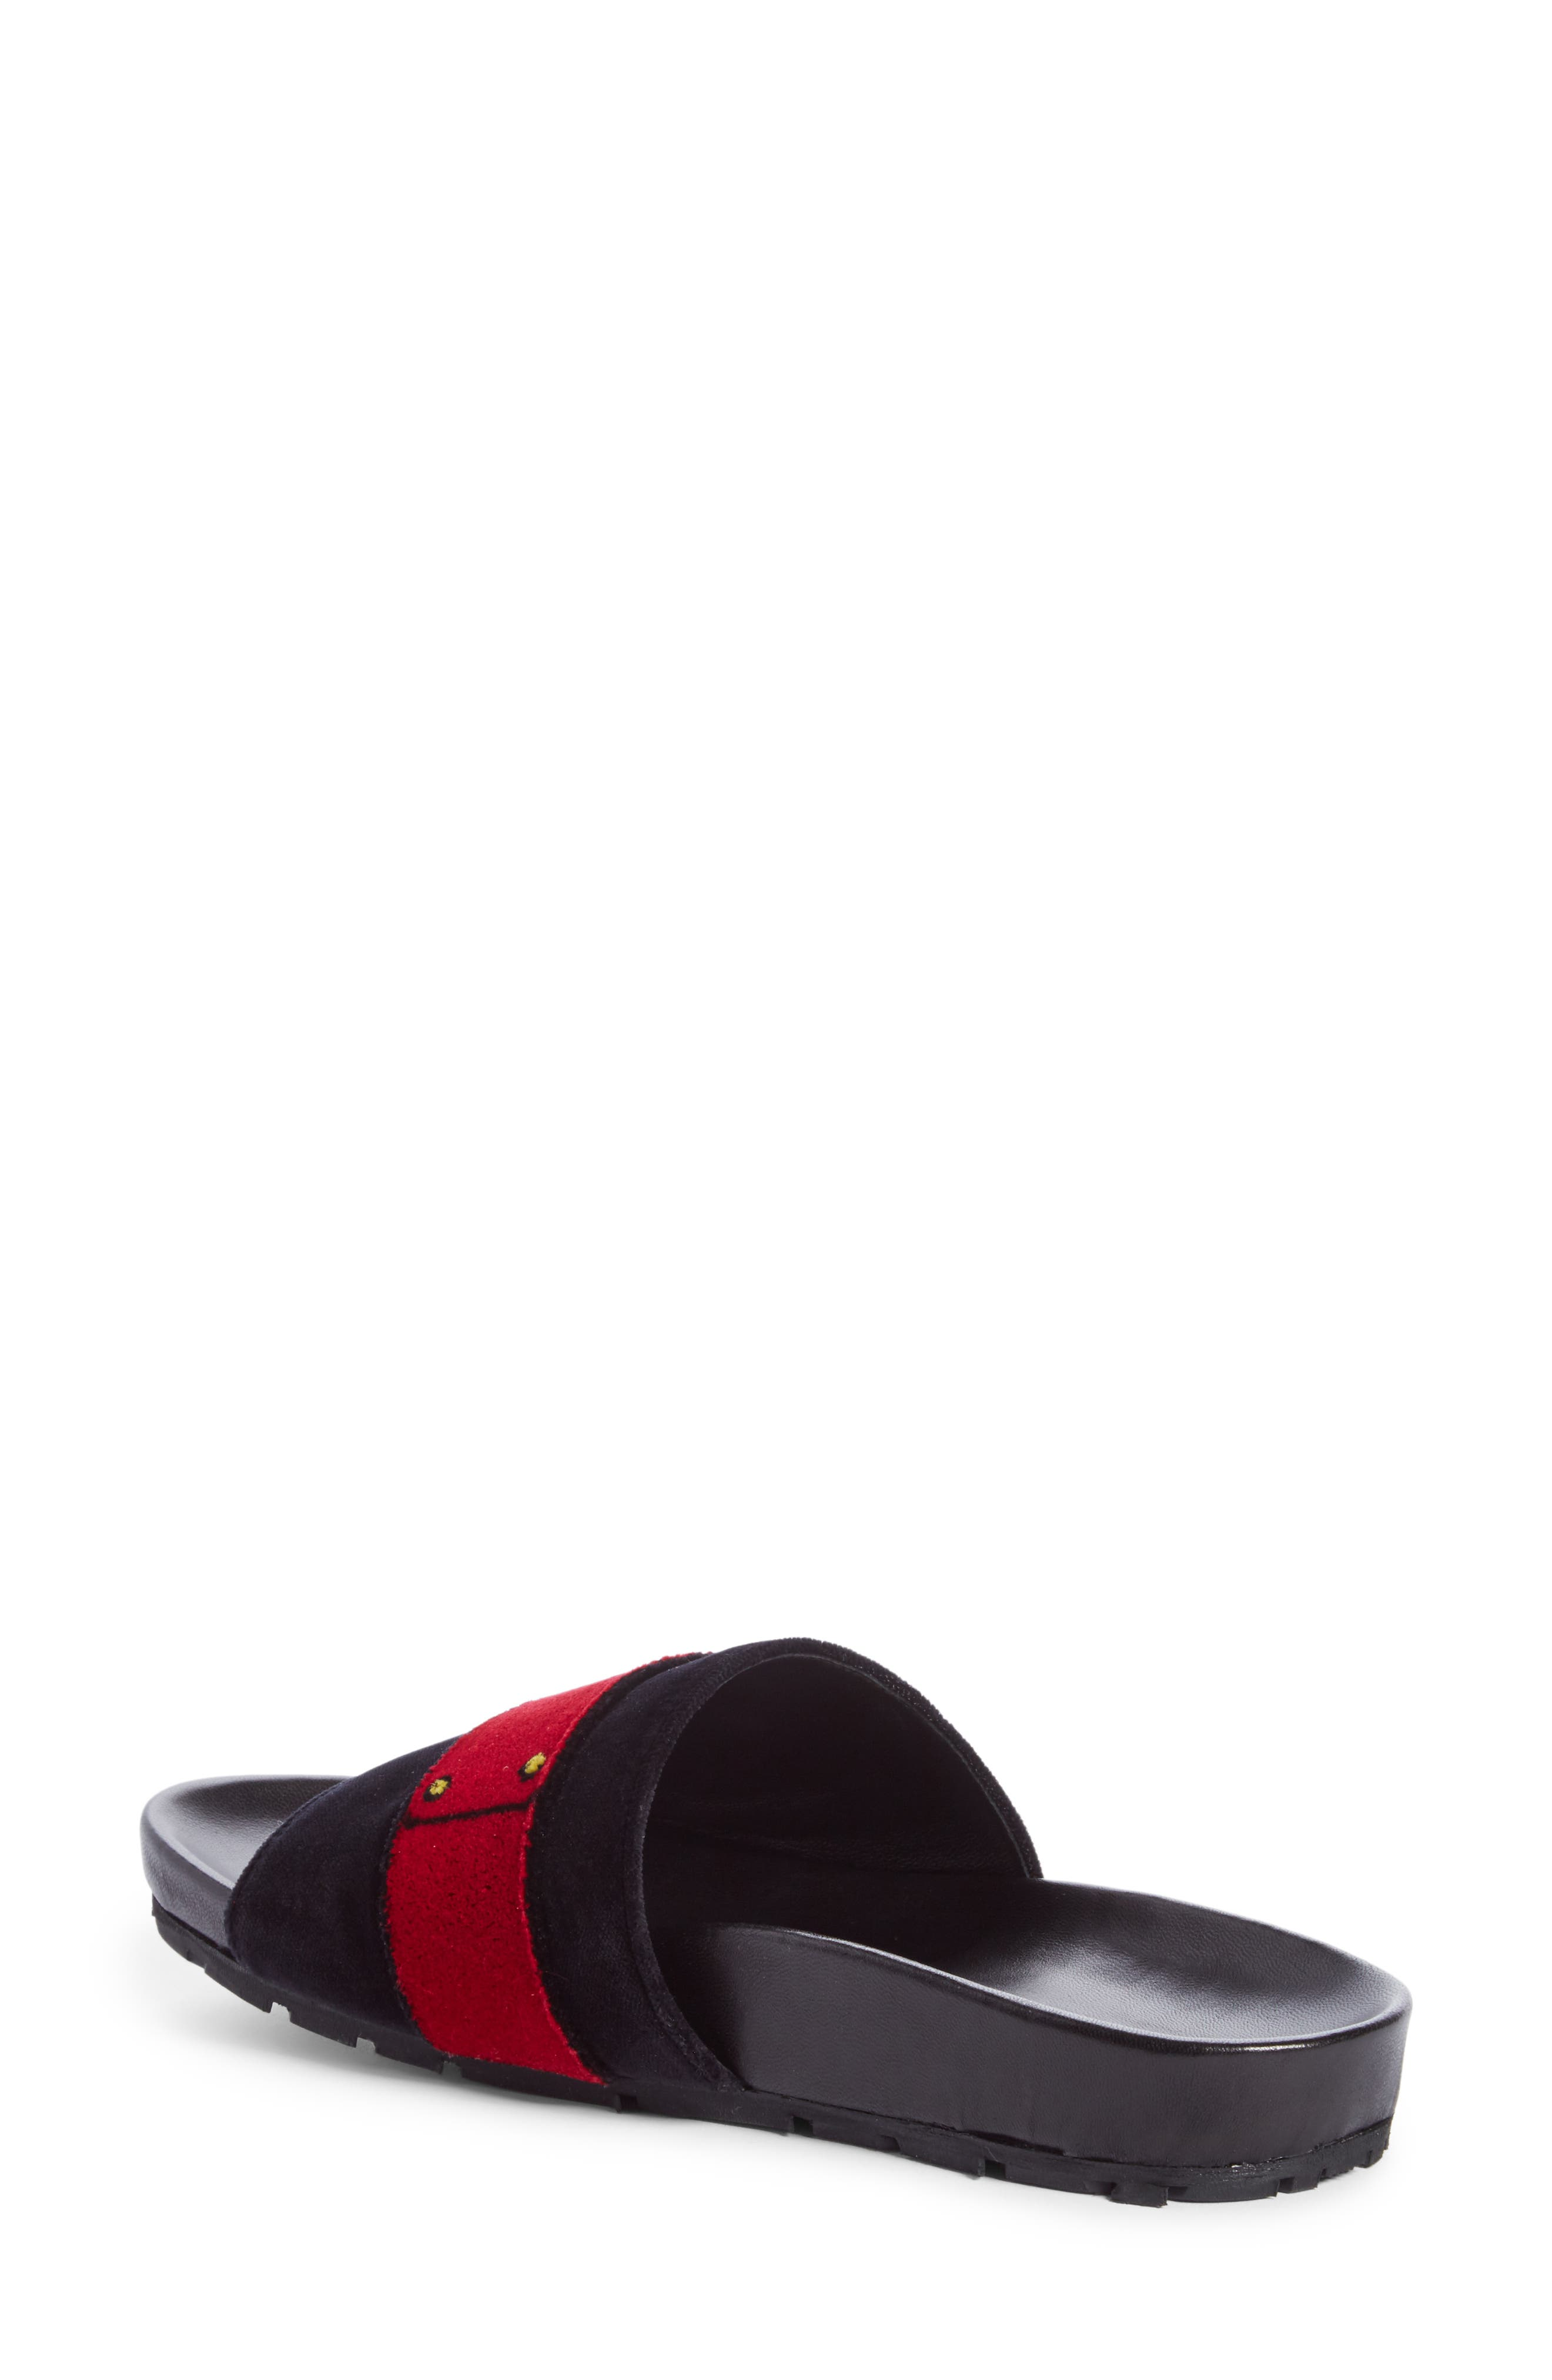 PRADA,                             Logo Slide Sandal,                             Alternate thumbnail 2, color,                             001